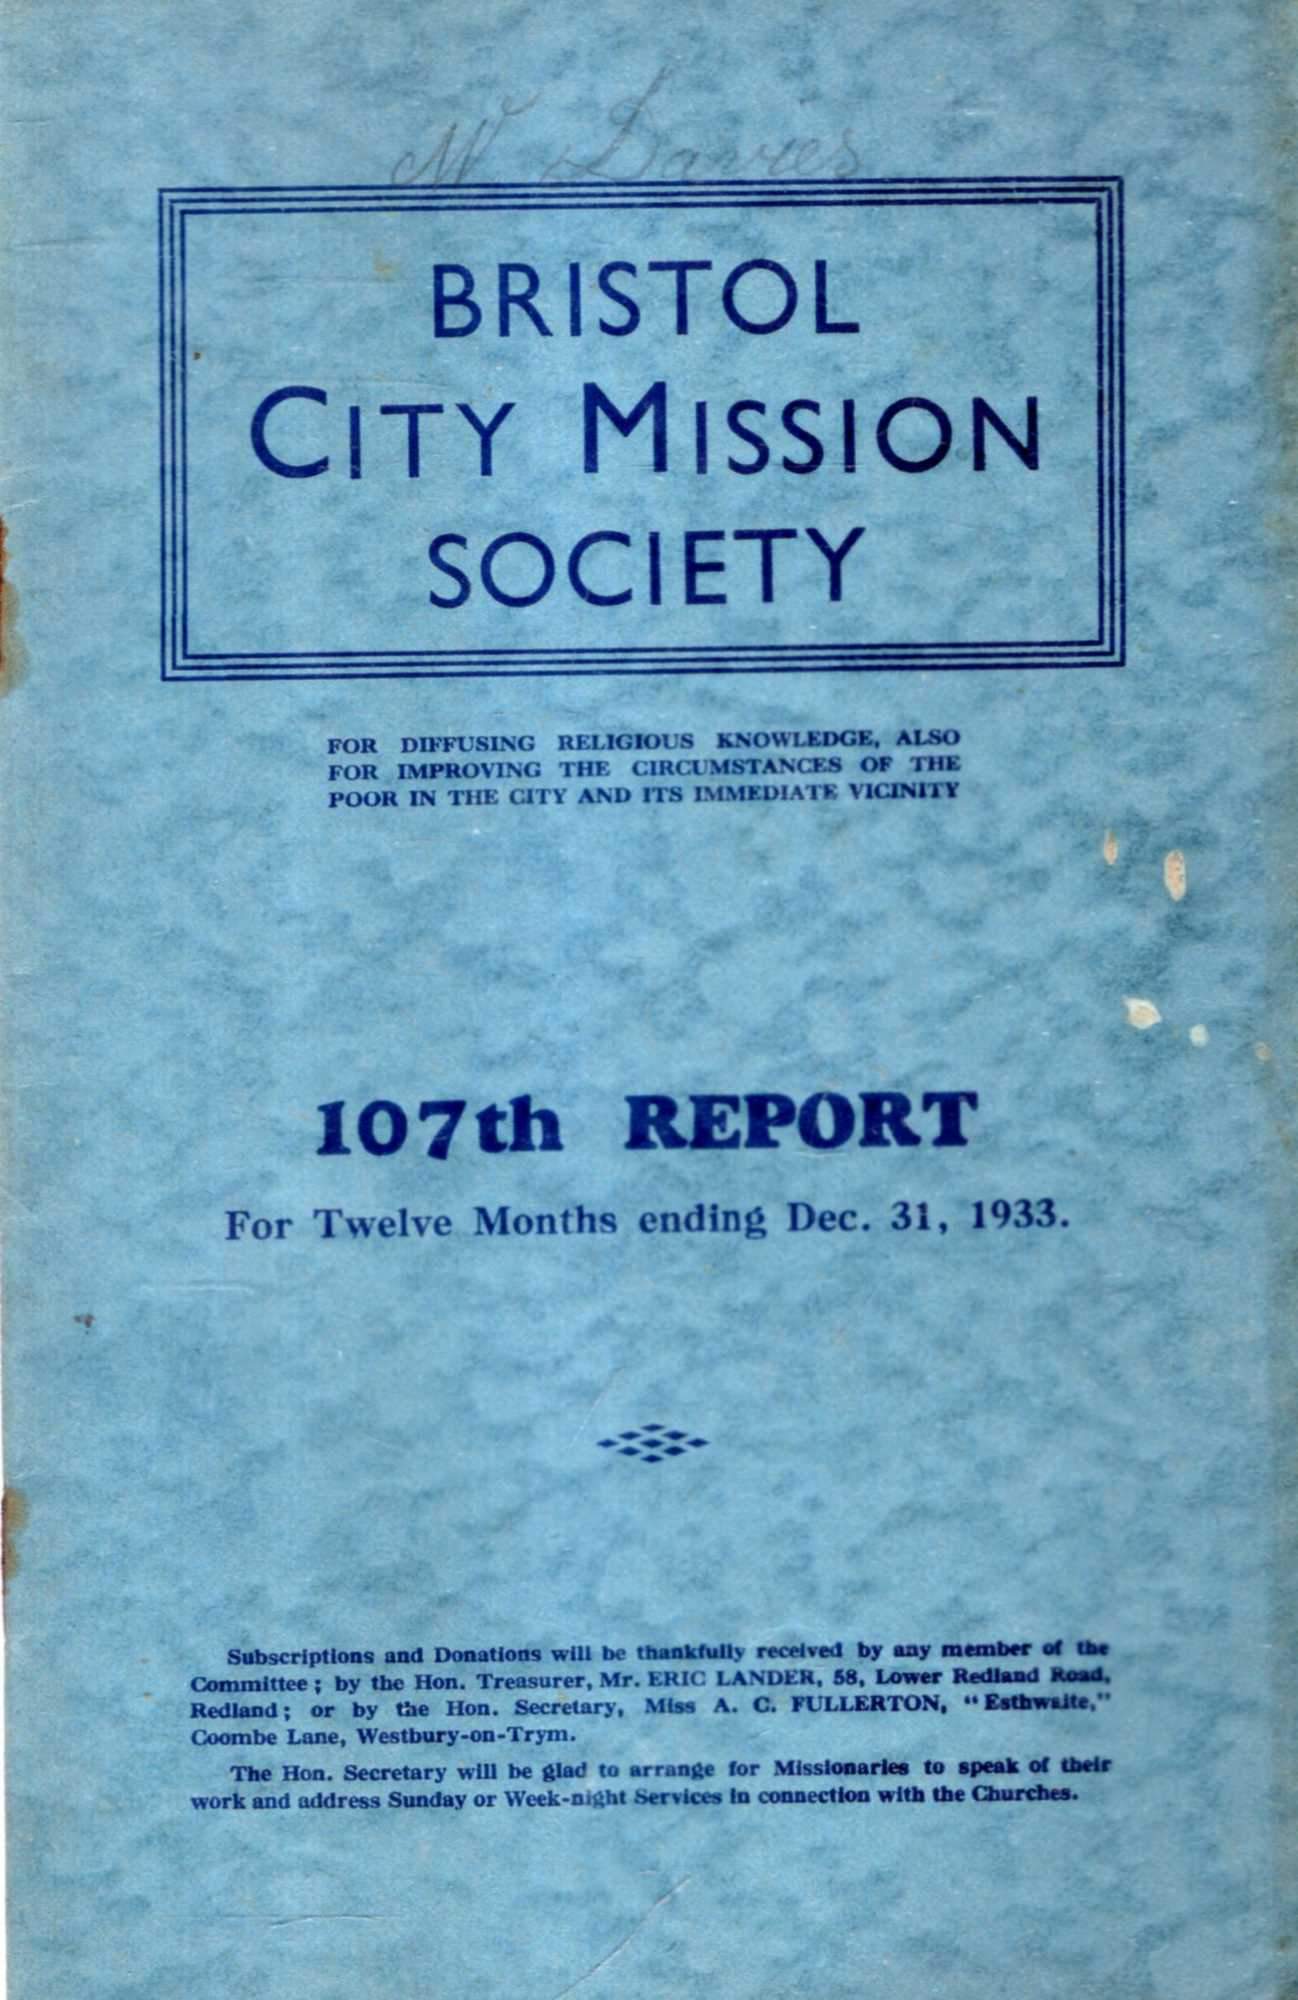 Image for The 107th Report of The Bristol City Mission Society